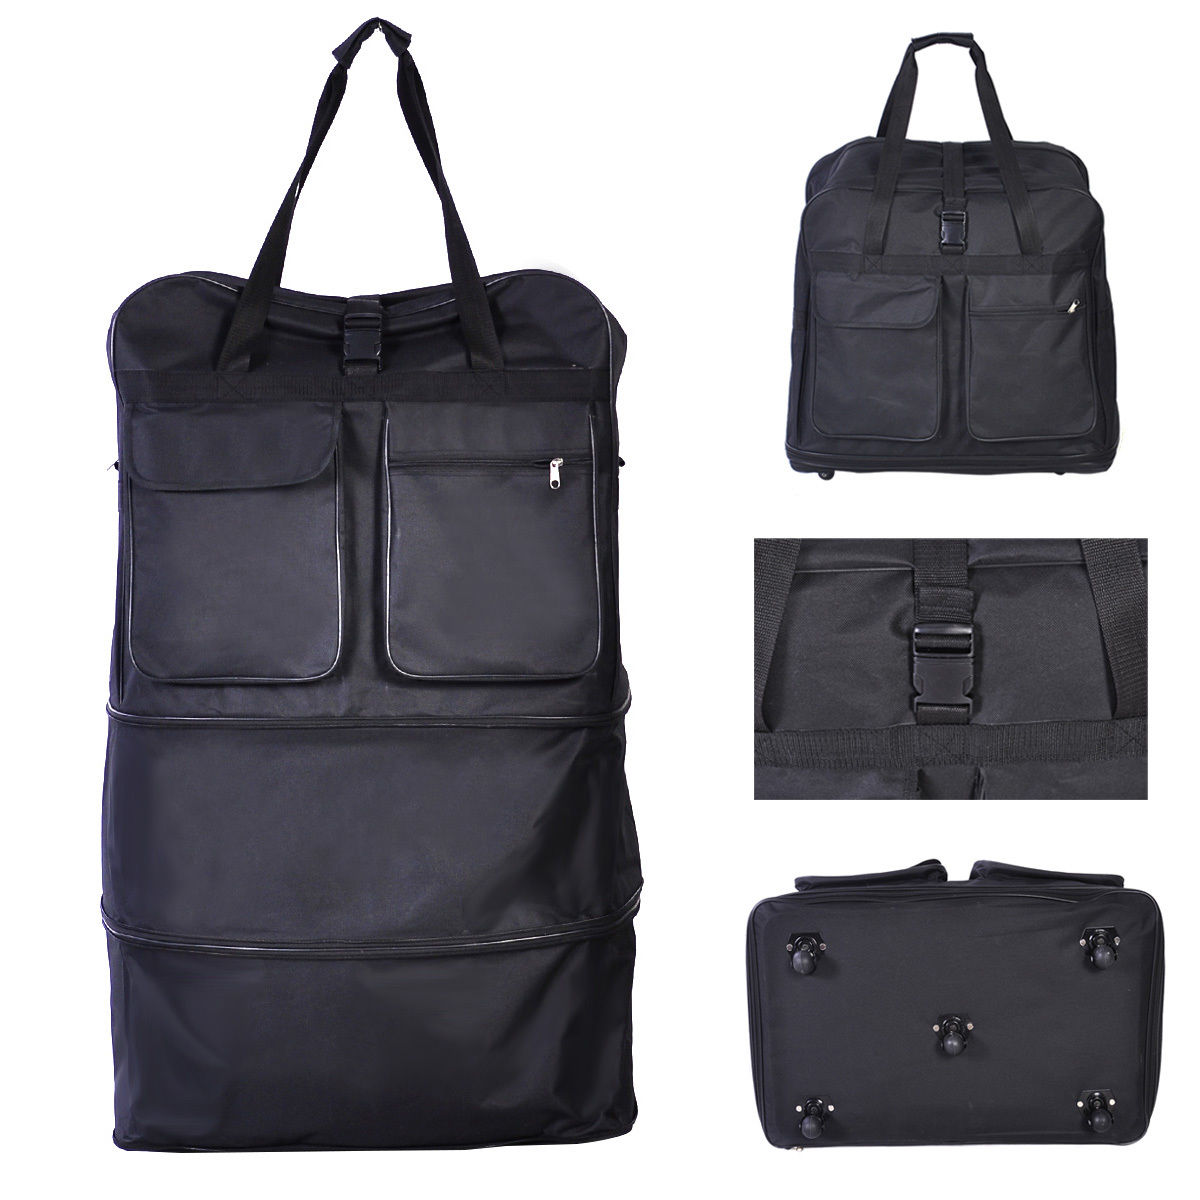 40'' Wheeled Rolling Spinning Suitcase Duffel Bag Travel Luggage Black by Costway